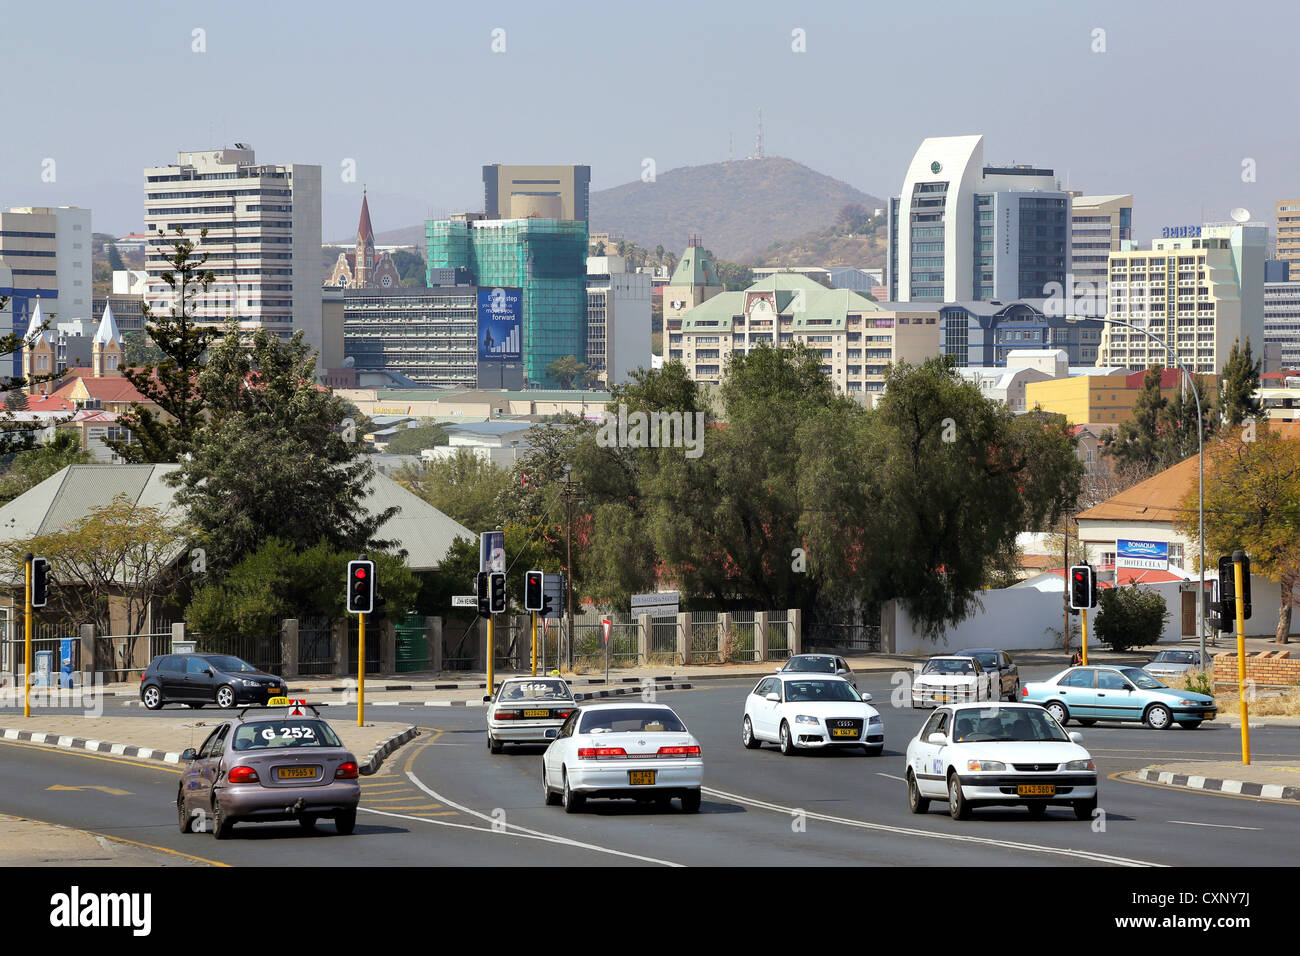 street and skyline of Windhoek, Namibia - Stock Image